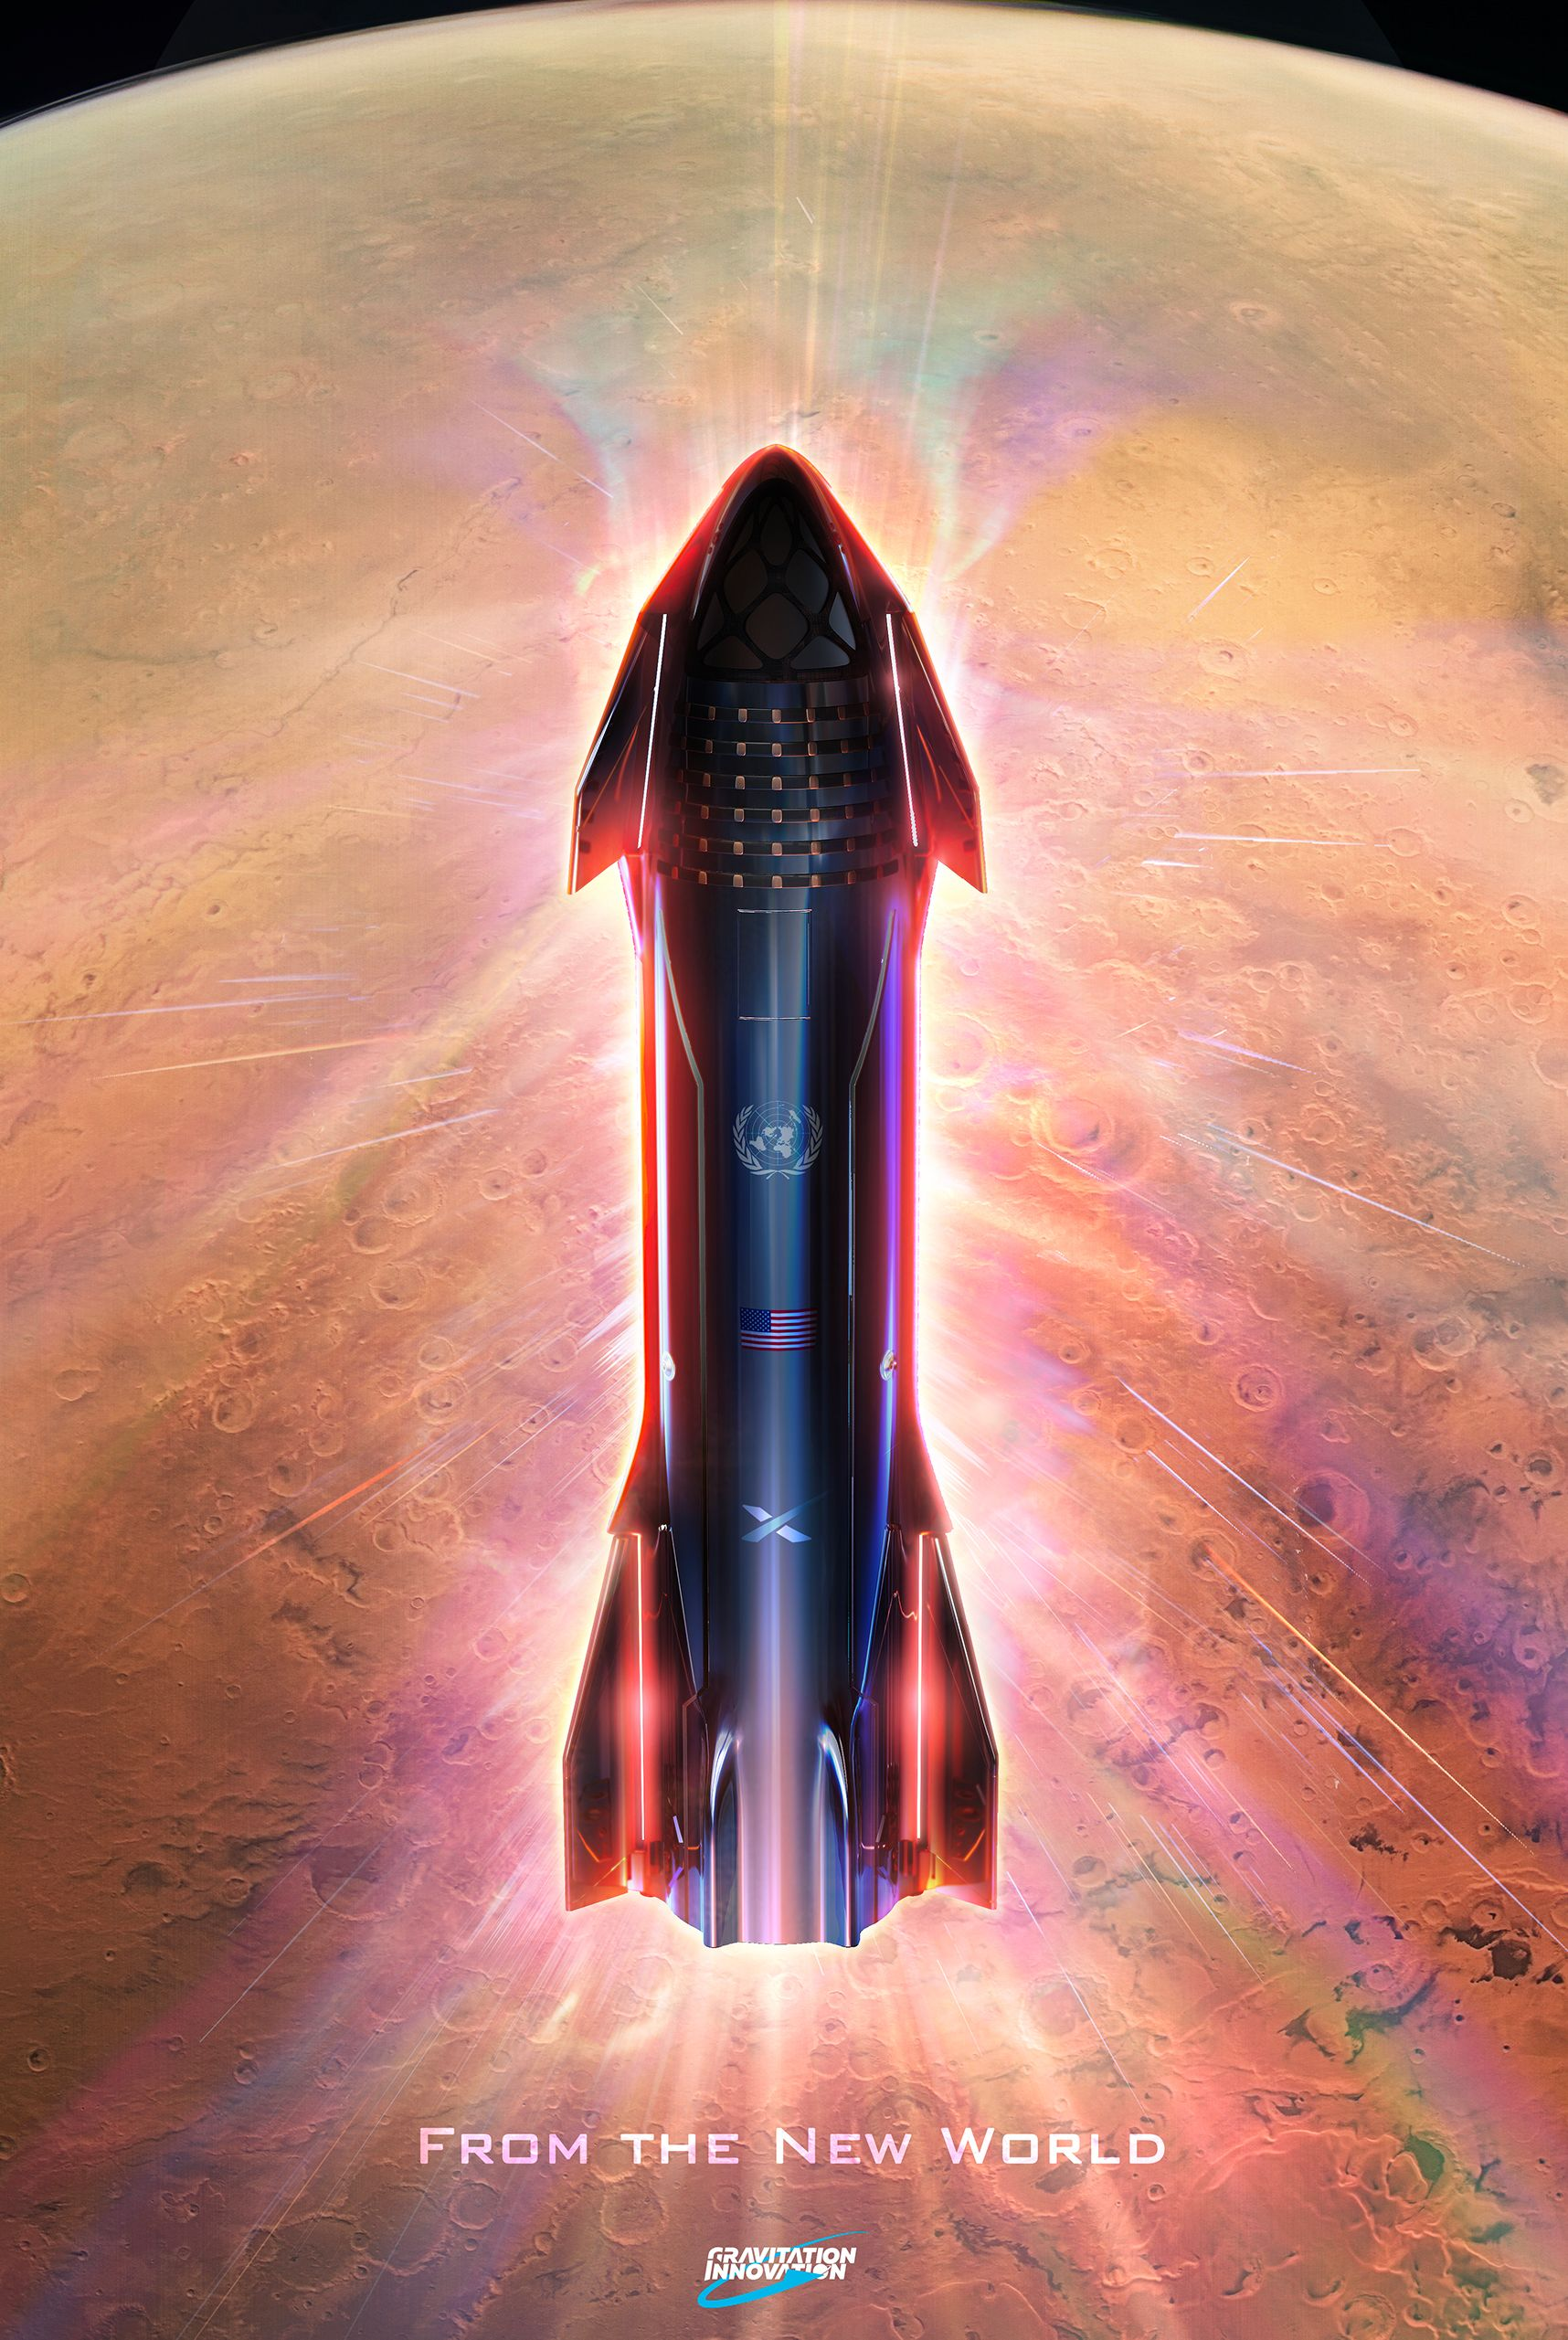 Wallpaper Of Spacex Starship Spacex Starship Spacex Starship